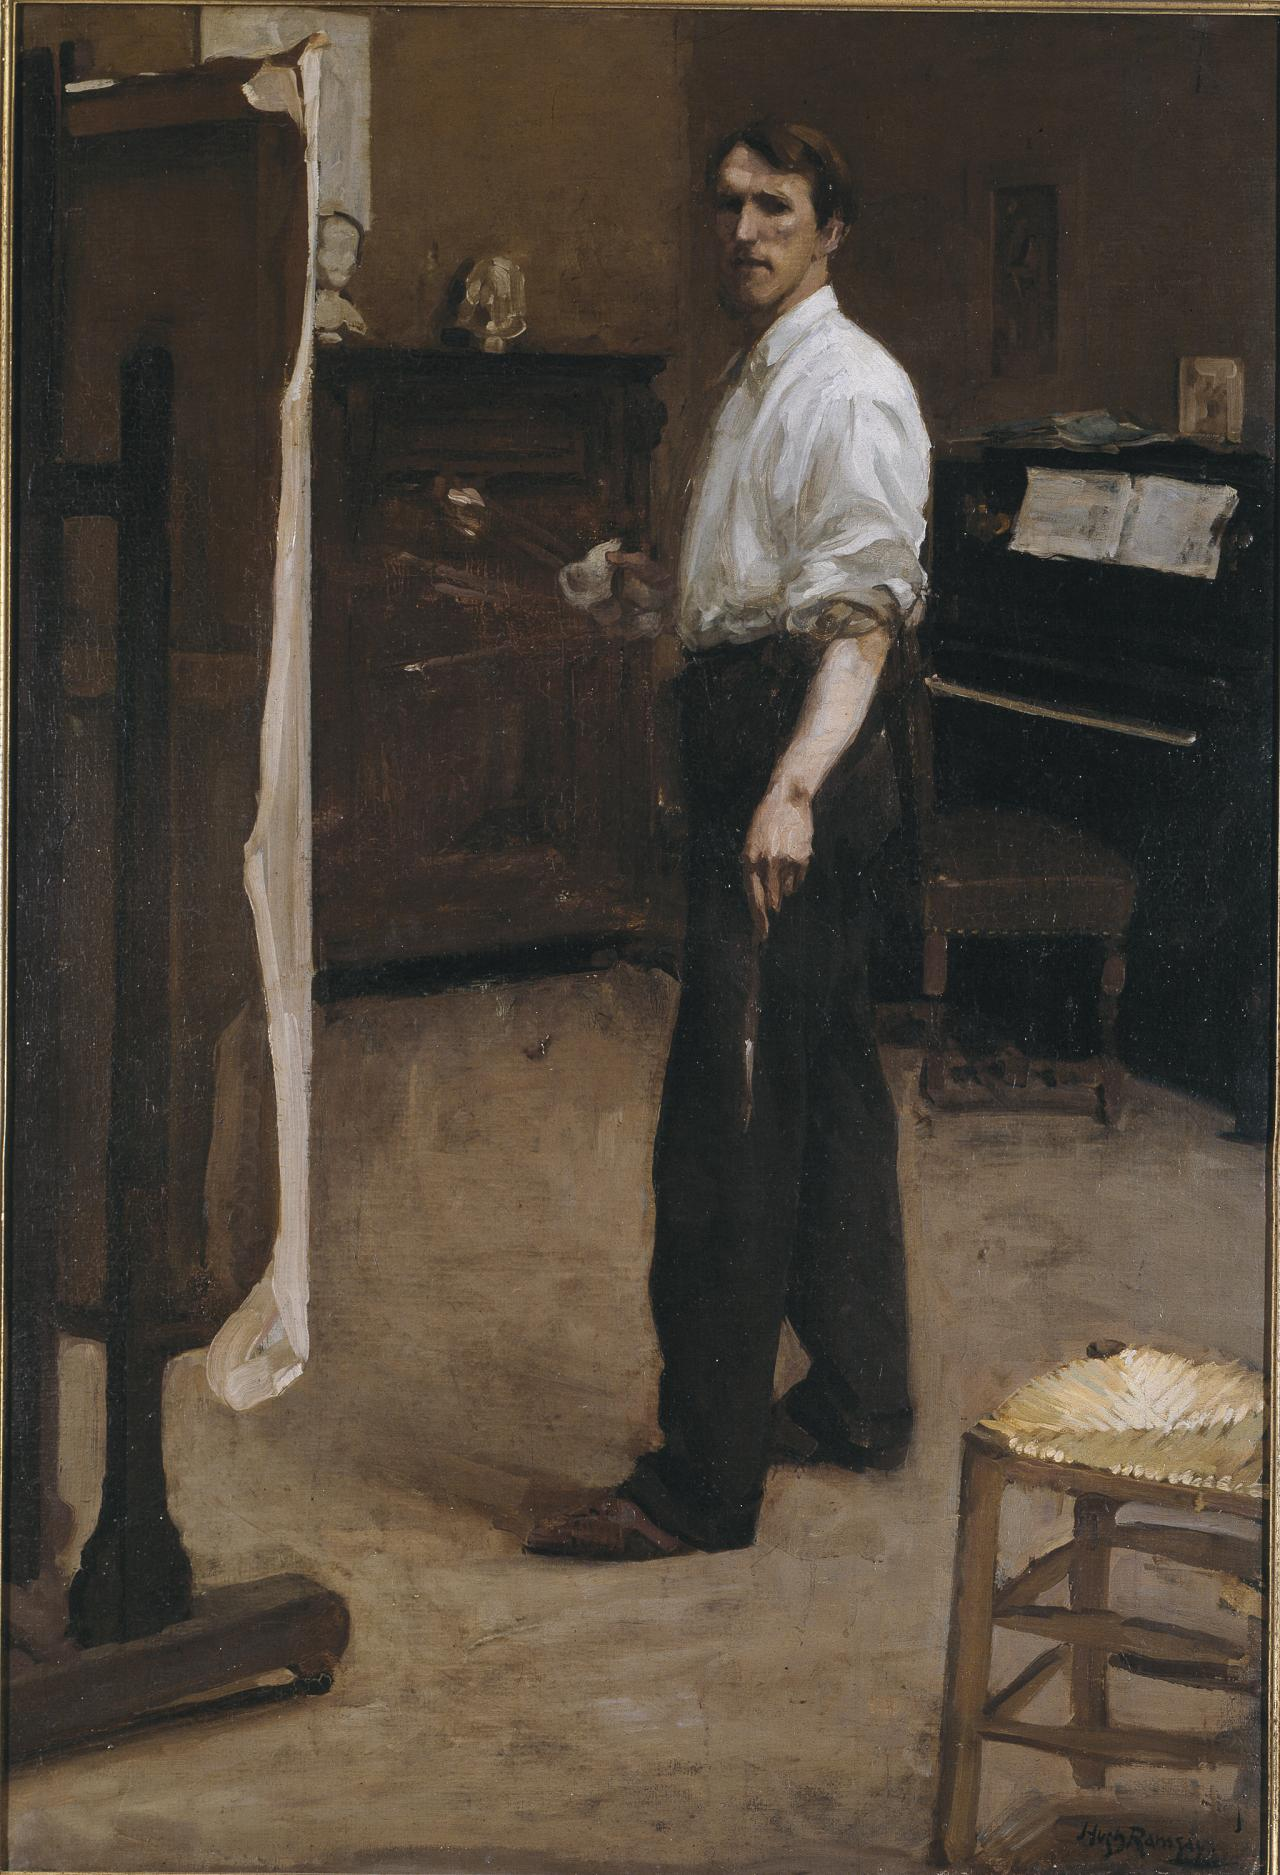 Portrait of the artist standing before easel